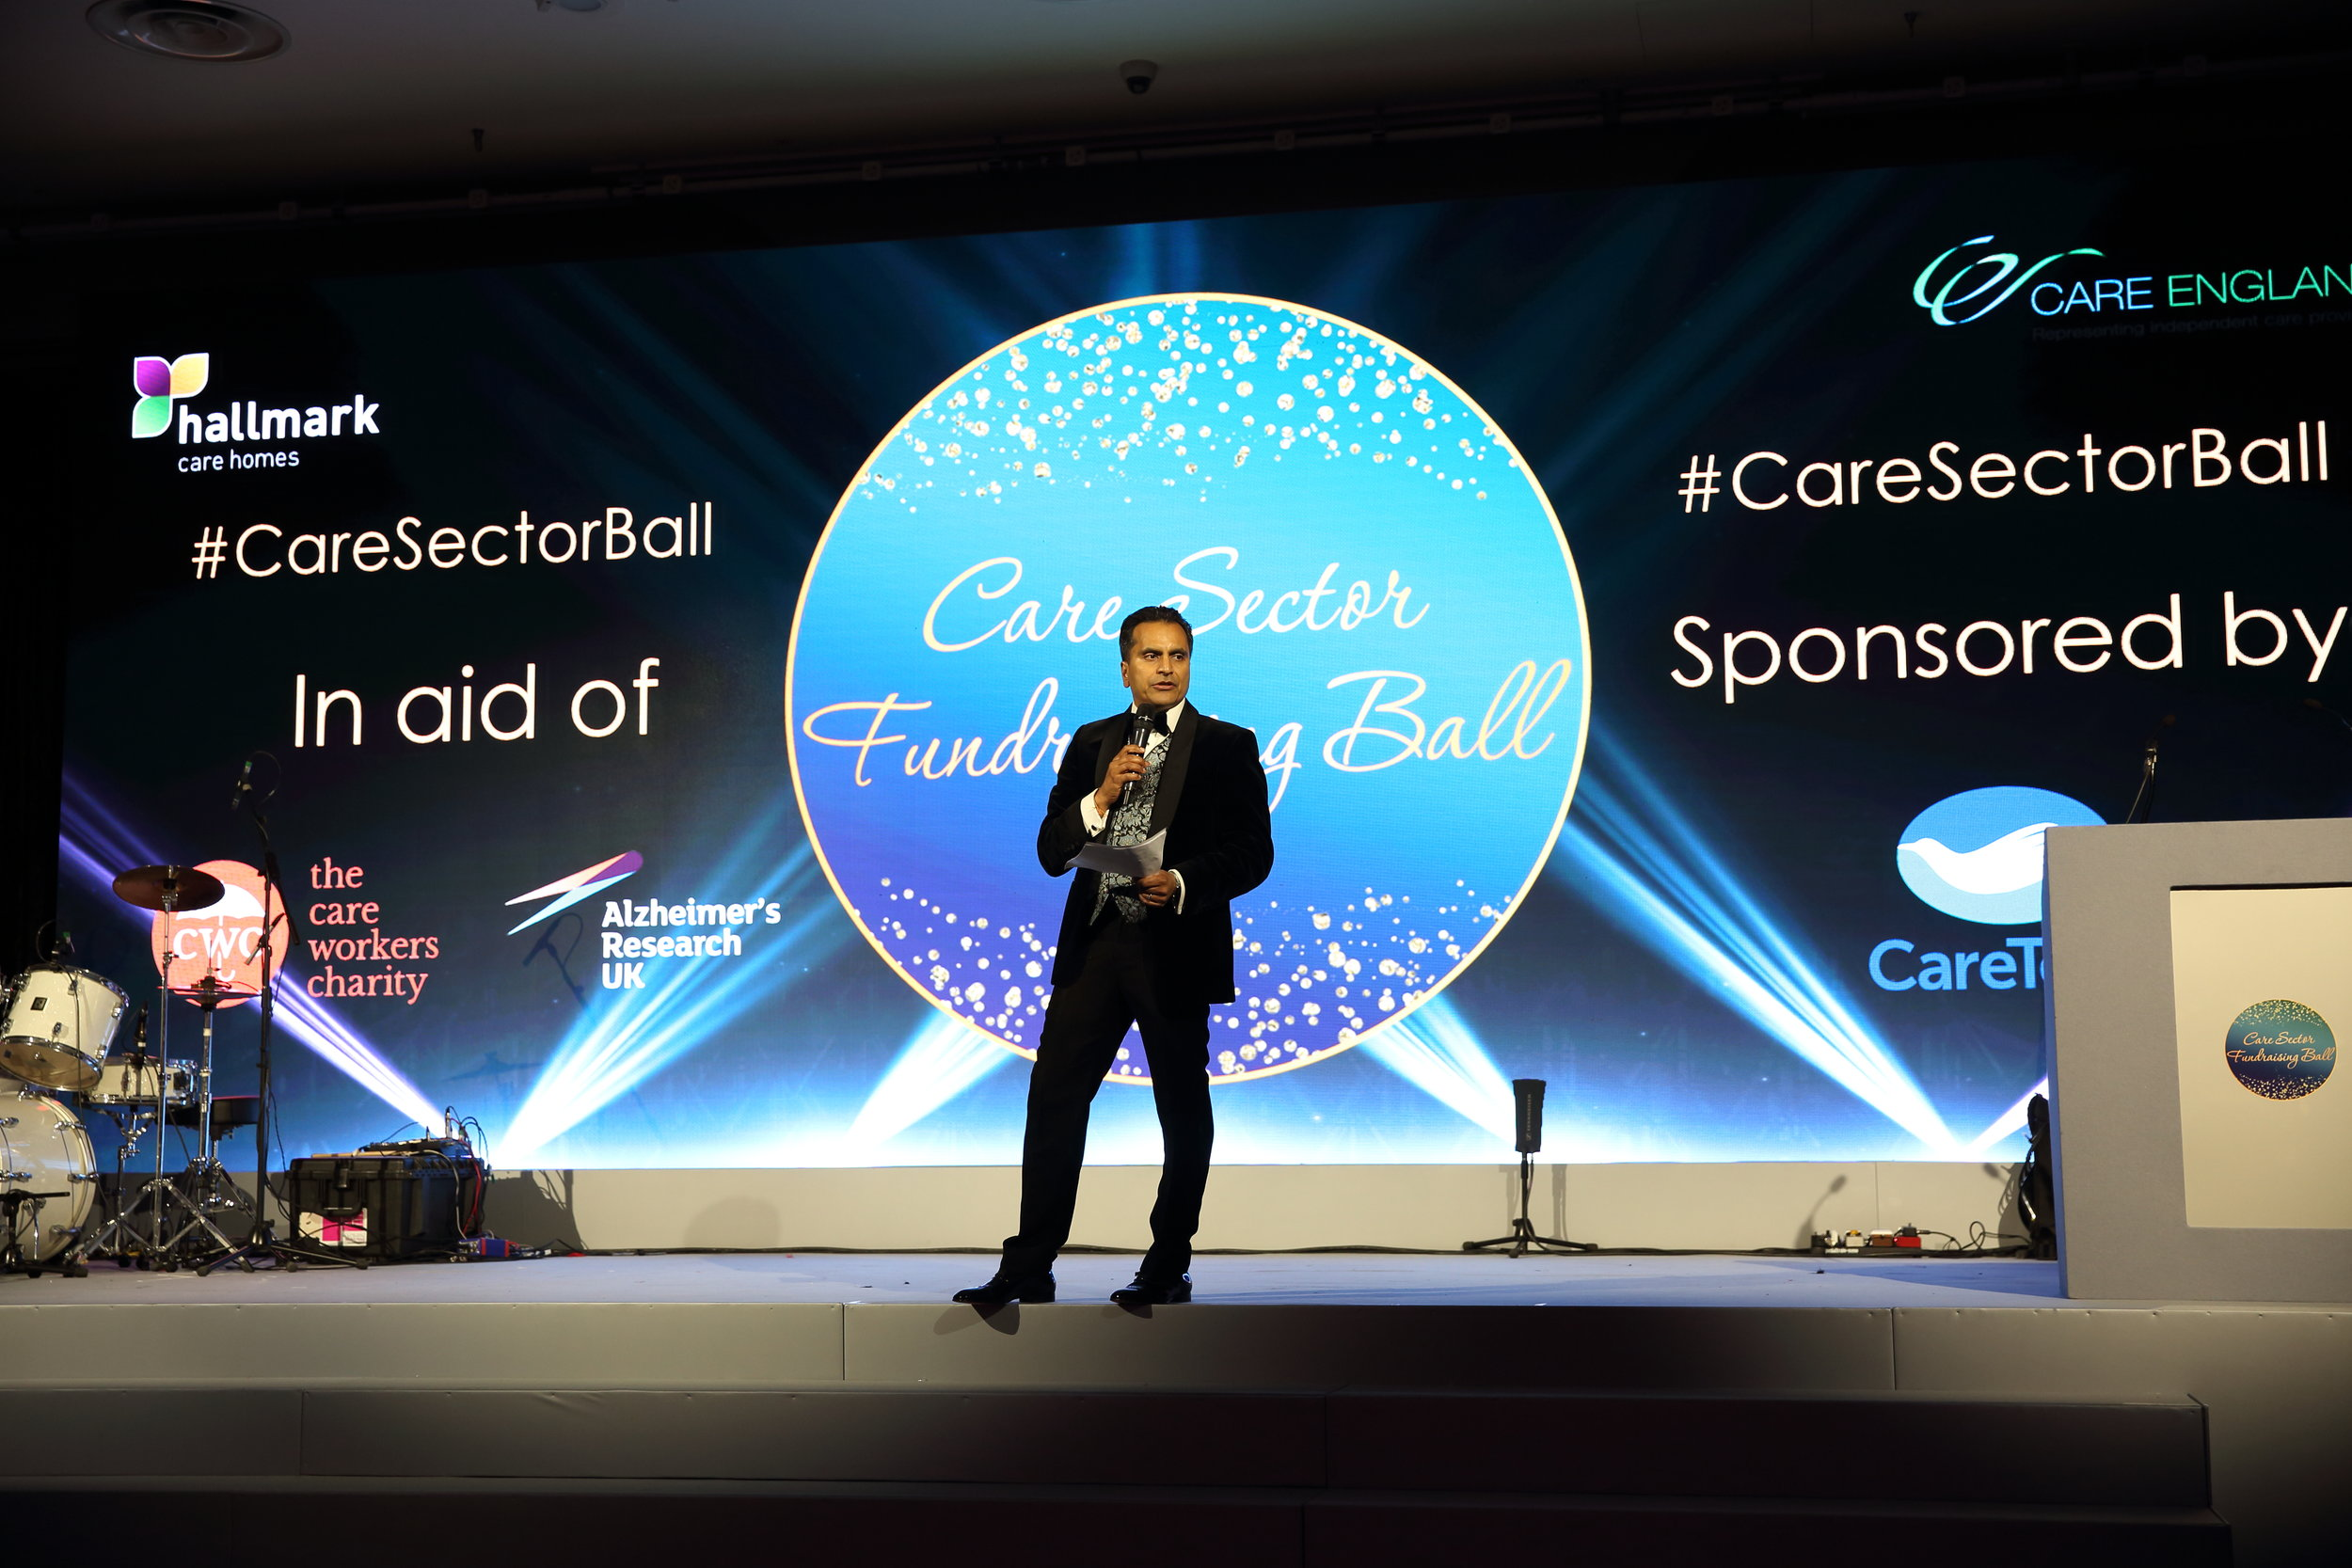 Two Brilliant Causes - Hallmark Care Homes launched the #CareSectorBall for the very first time! Our task? Build buzz, drive user interaction on the silent bid, spotlight the two supported causes.